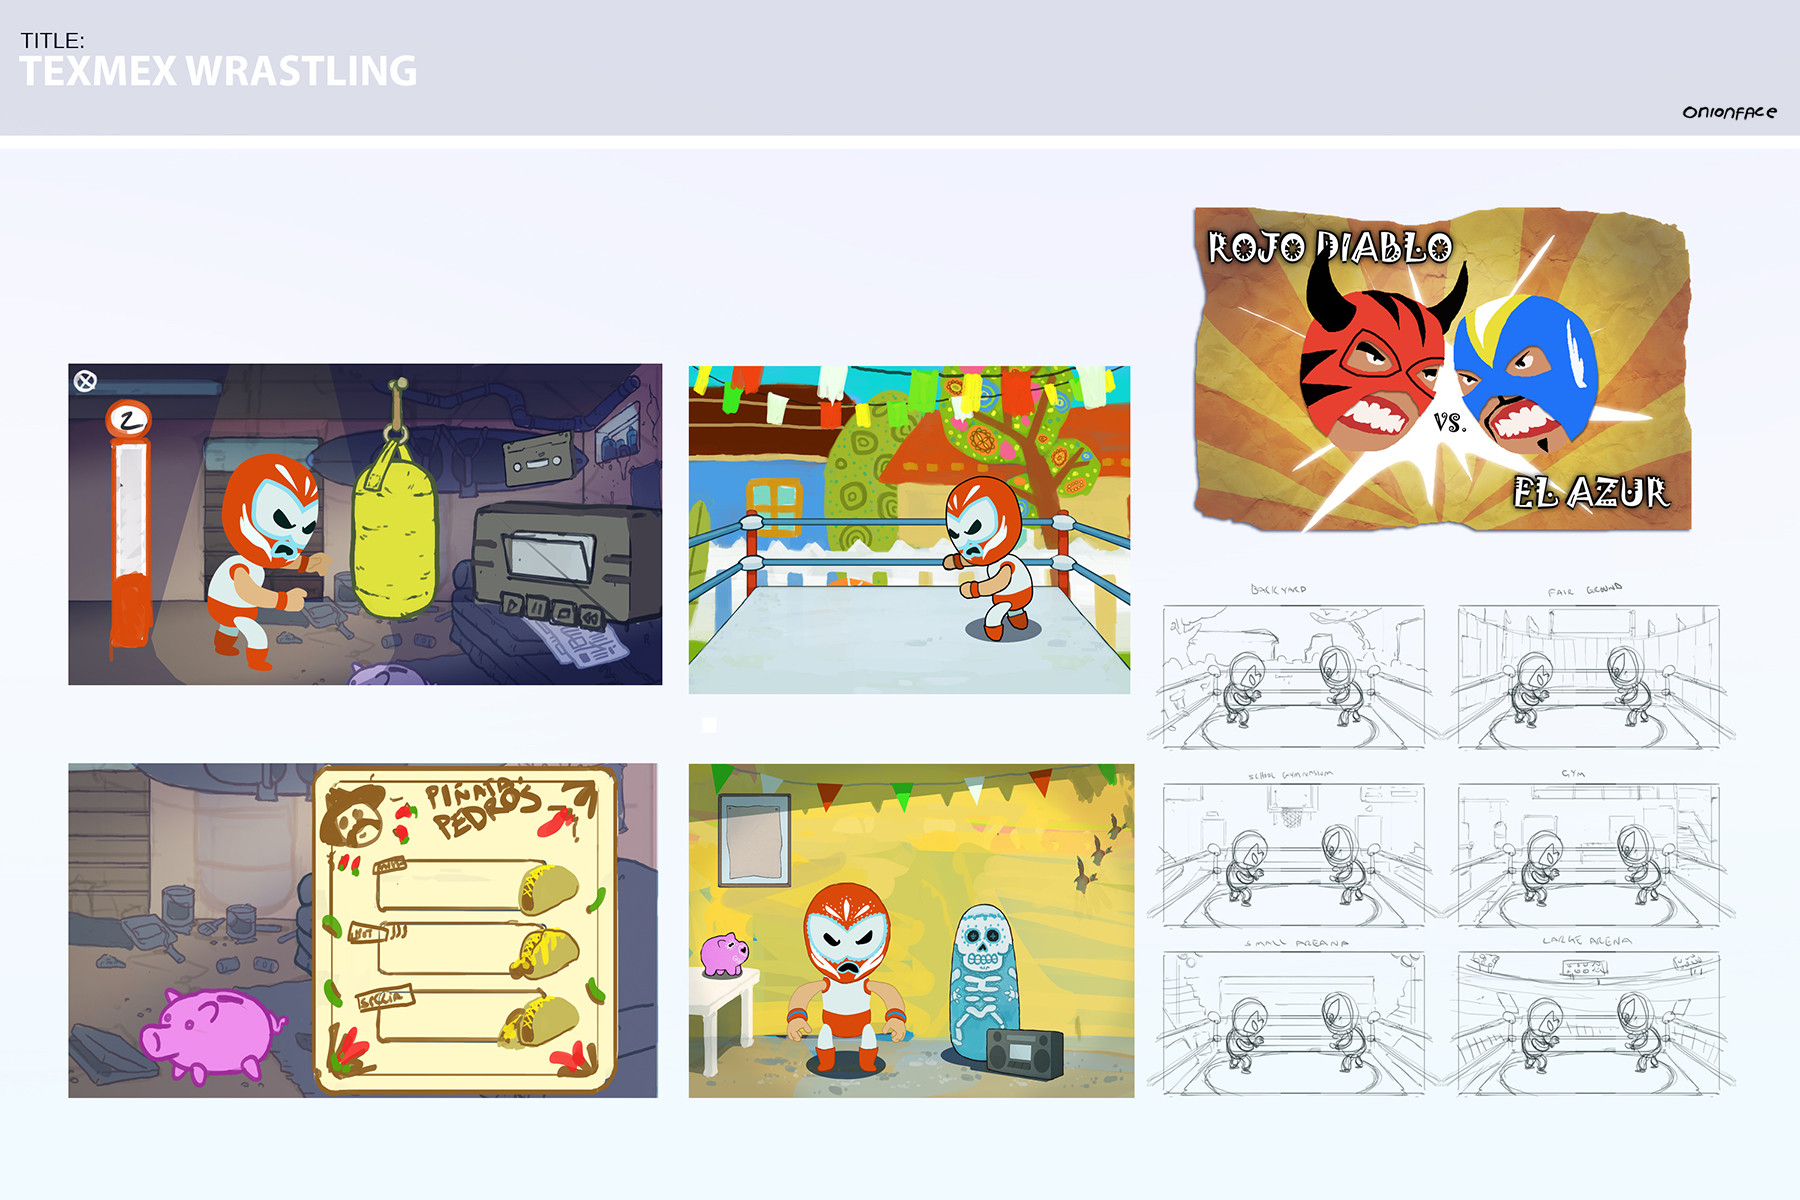 West clendinning game design wrestling